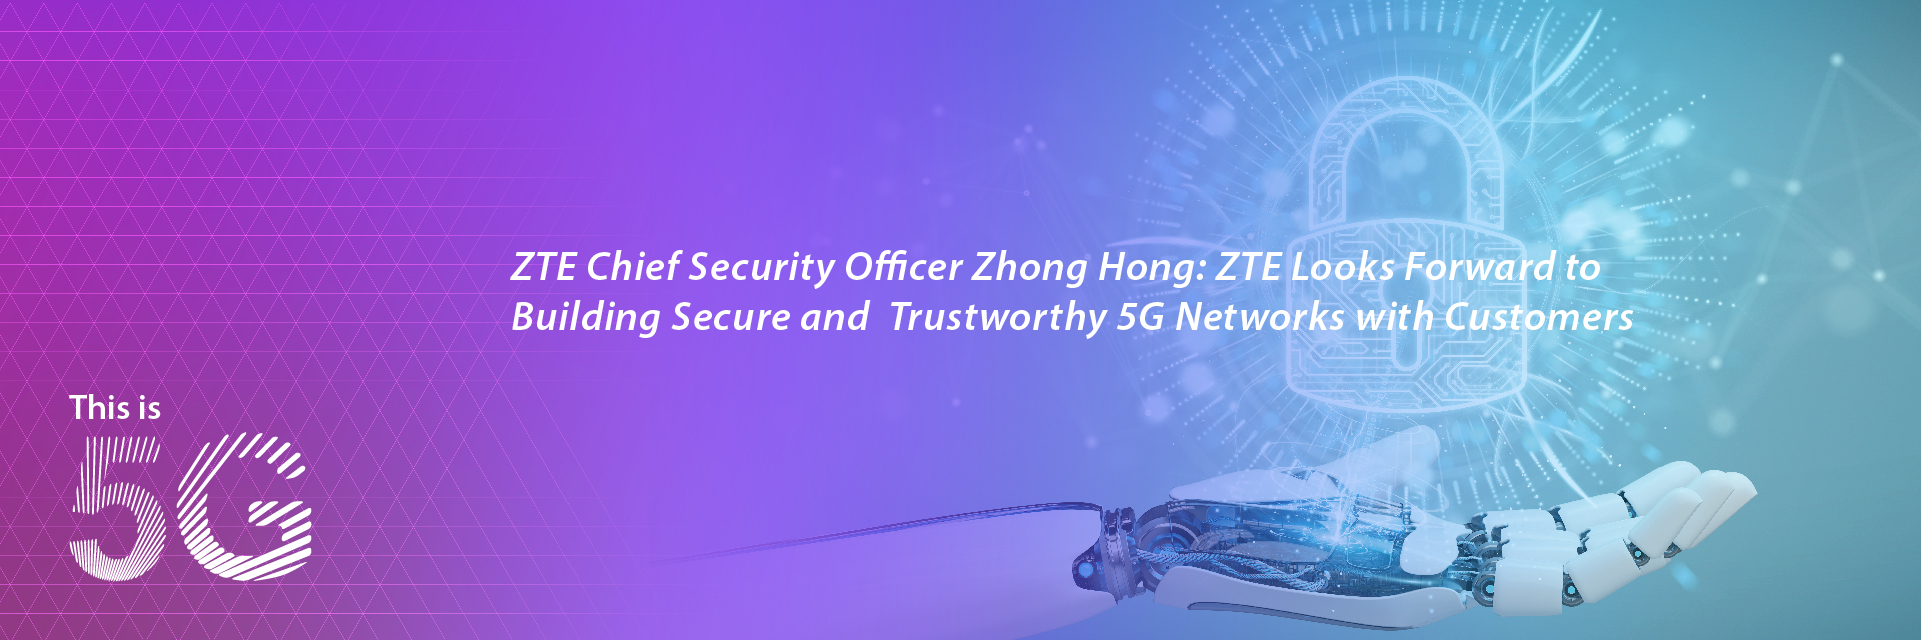 ZTE Chief Security Officer Zhong Hong:ZTE Looks Forward to Building Secure and Trustworthy 5G Networks with Customers